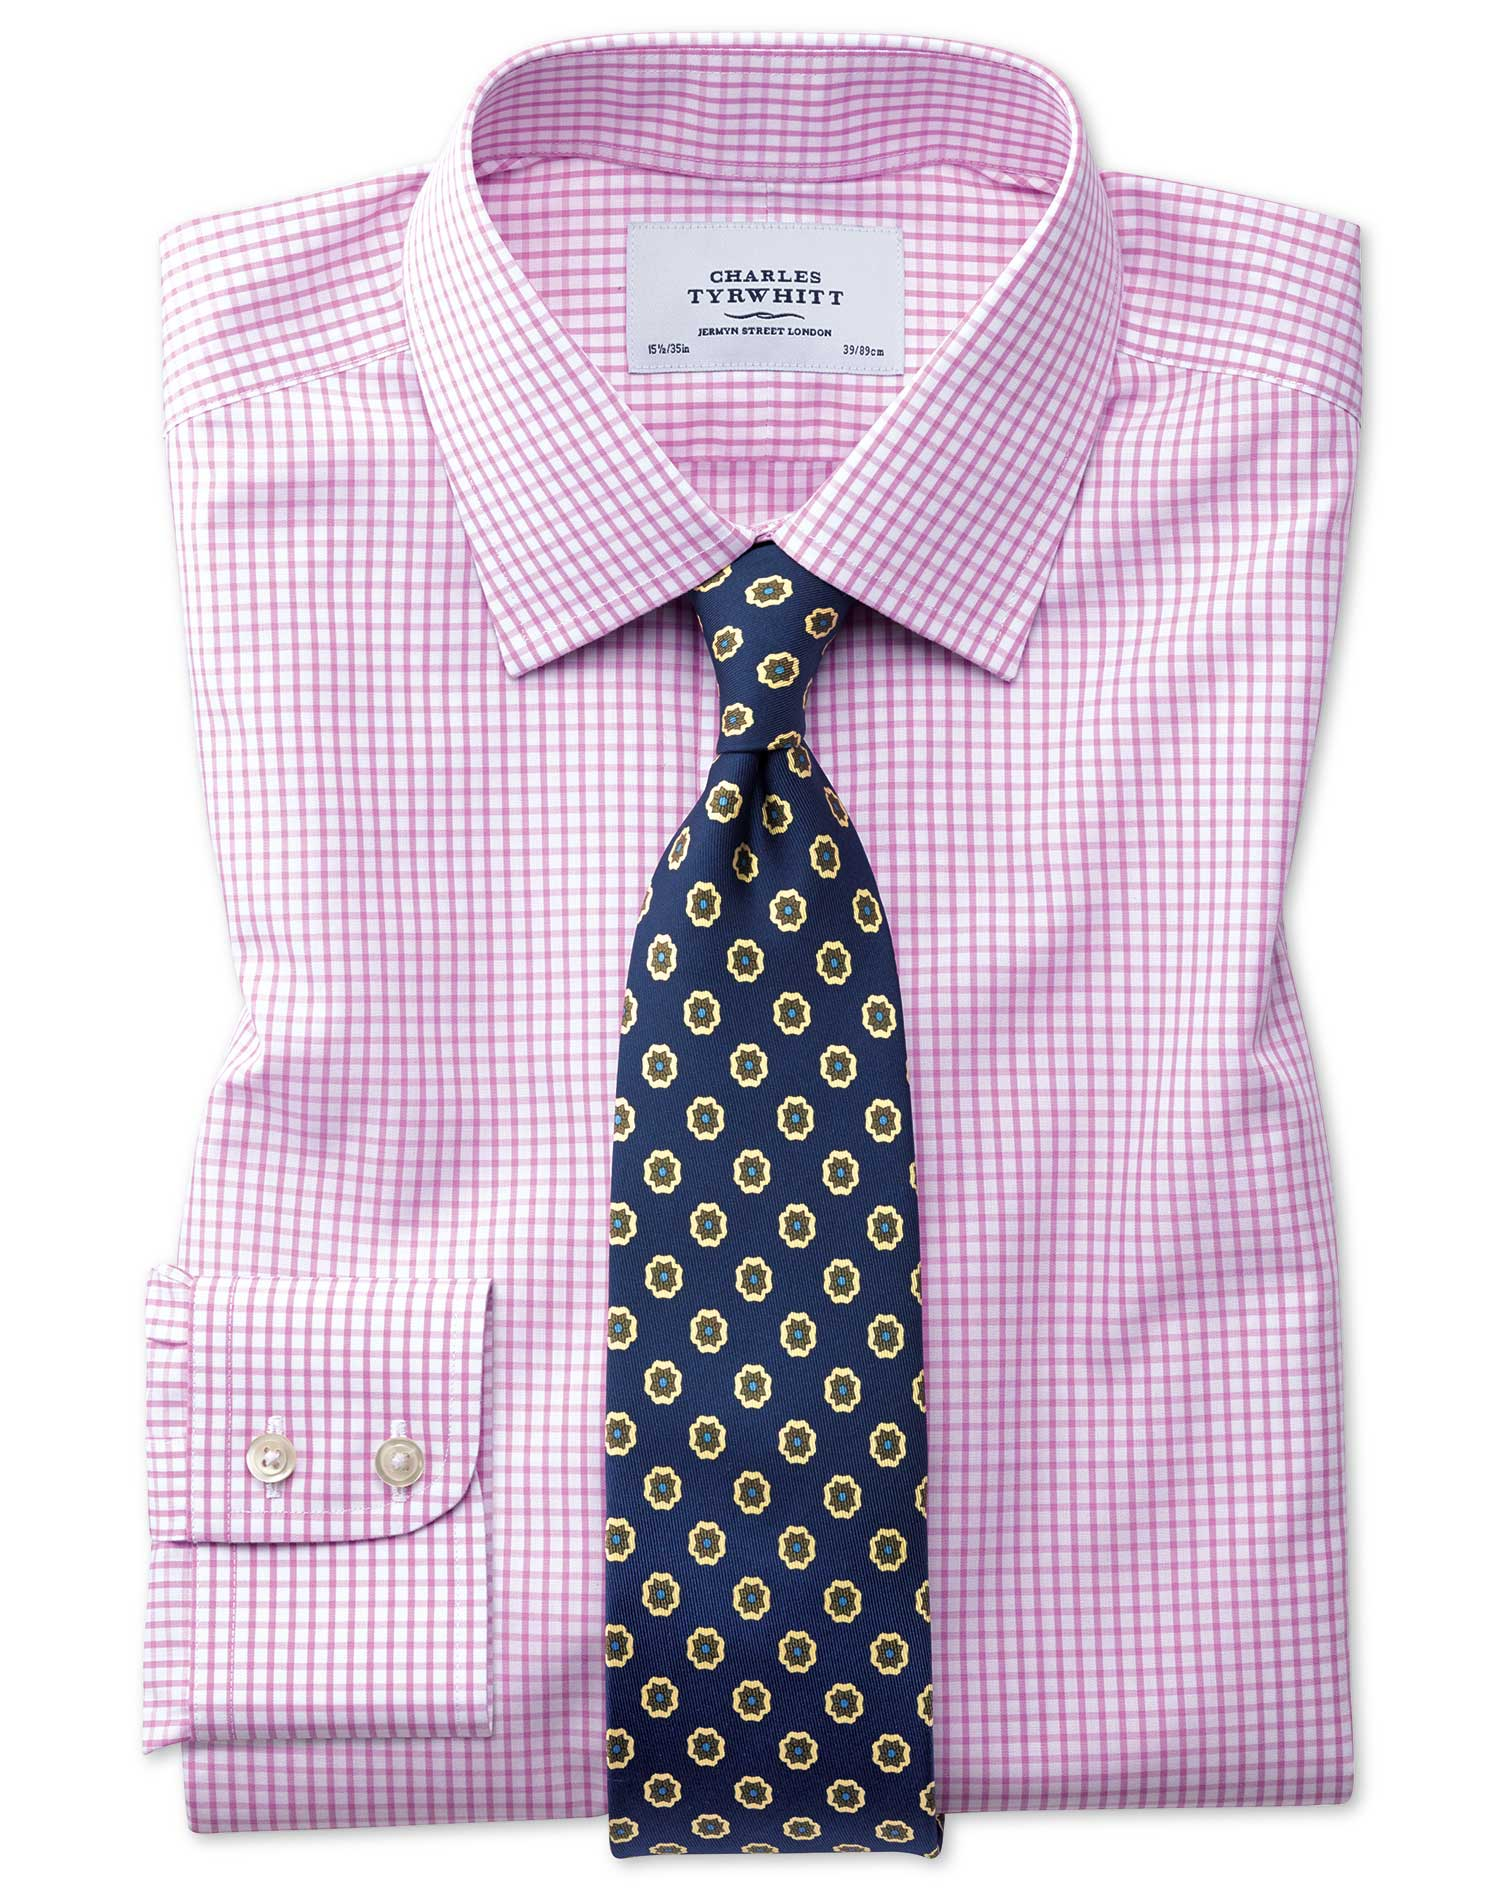 Slim Fit Non-Iron Grid Check Pink Cotton Formal Shirt Single Cuff Size 16/34 by Charles Tyrwhitt